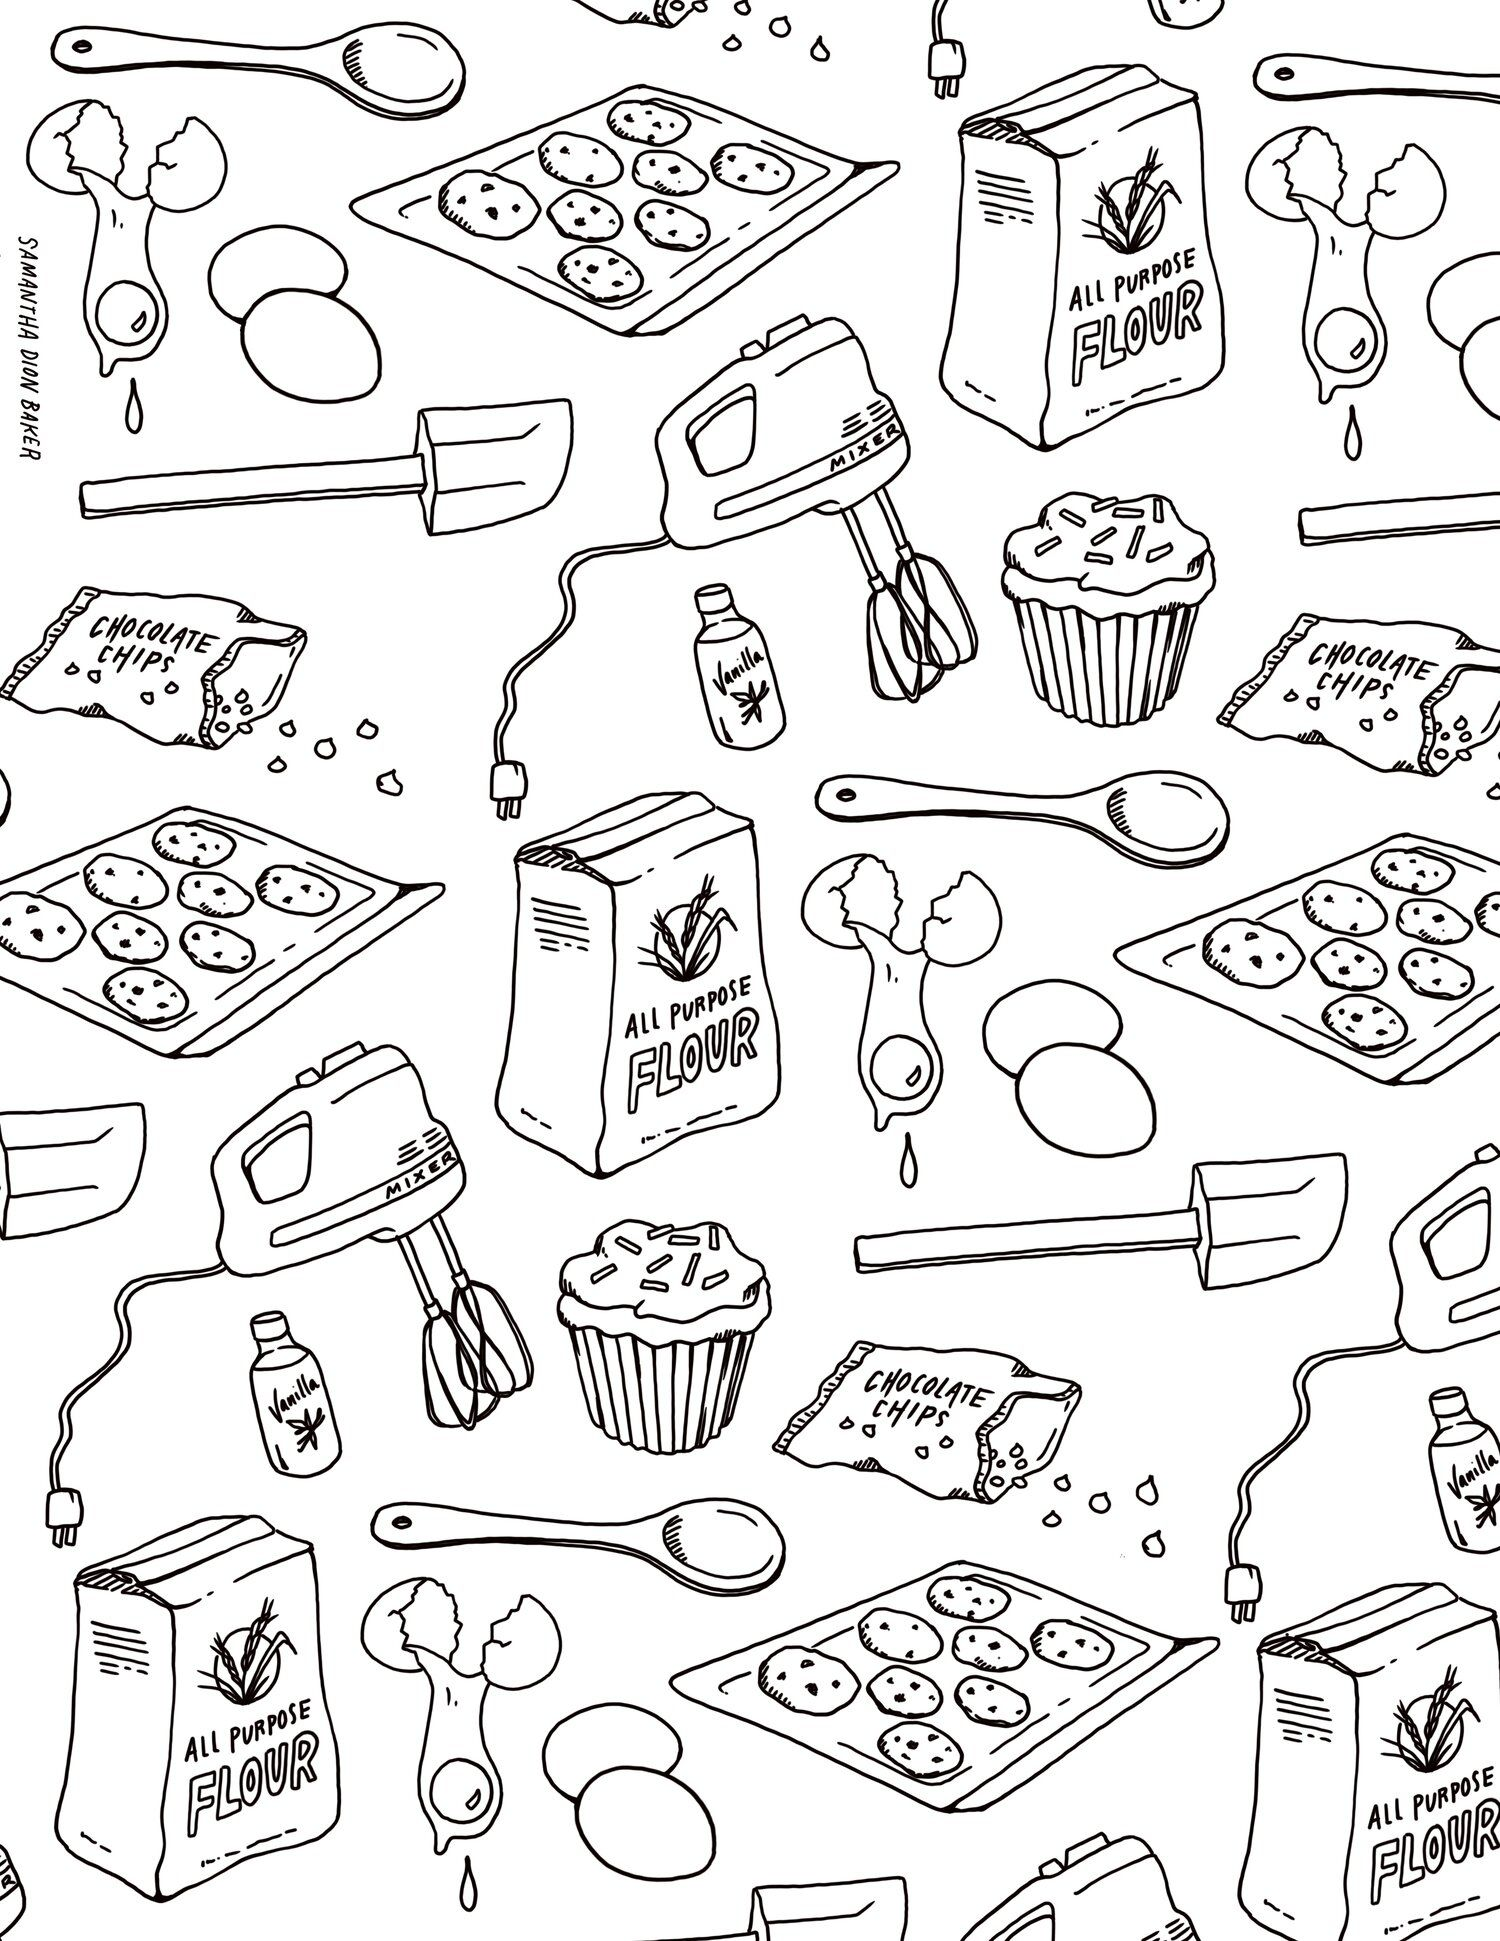 Pin on Free // Colouring Sheets